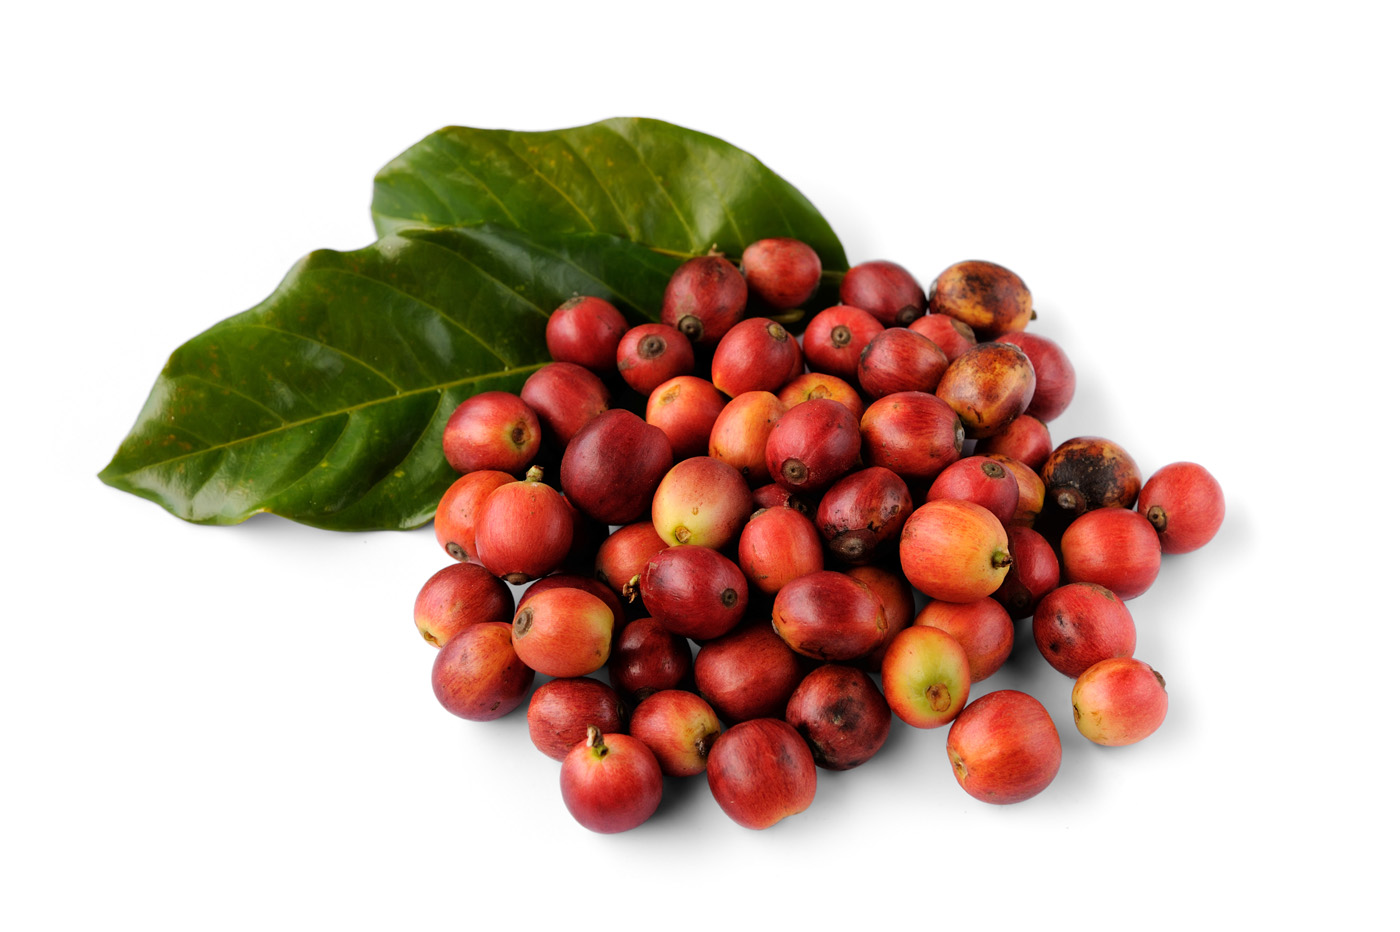 Raw coffee beans 50276